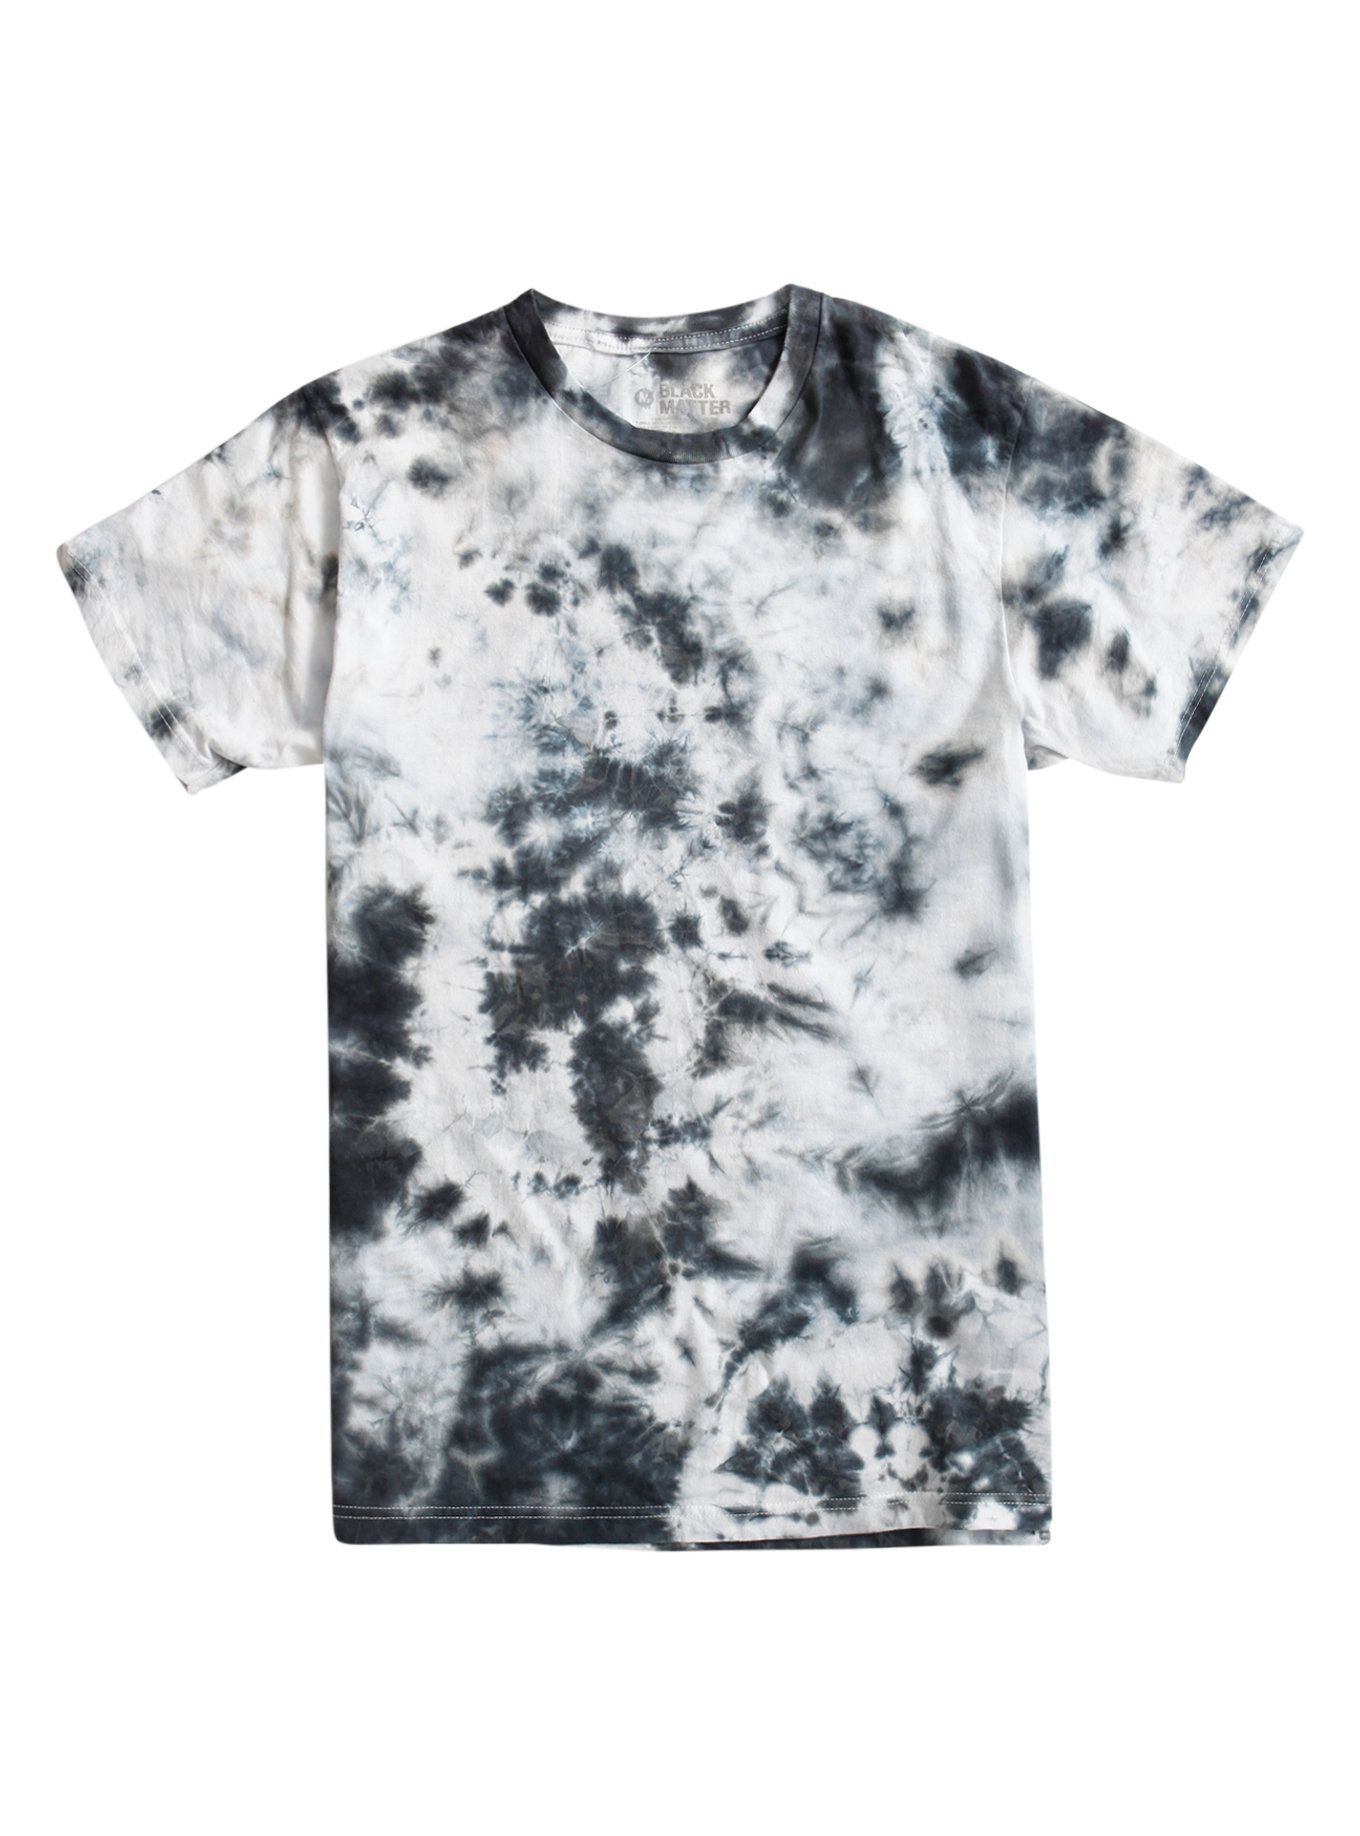 f11e2ab94079d Black & White Tie Dye T-Shirt | /// WASH GARMENTS /// | Black tie ...